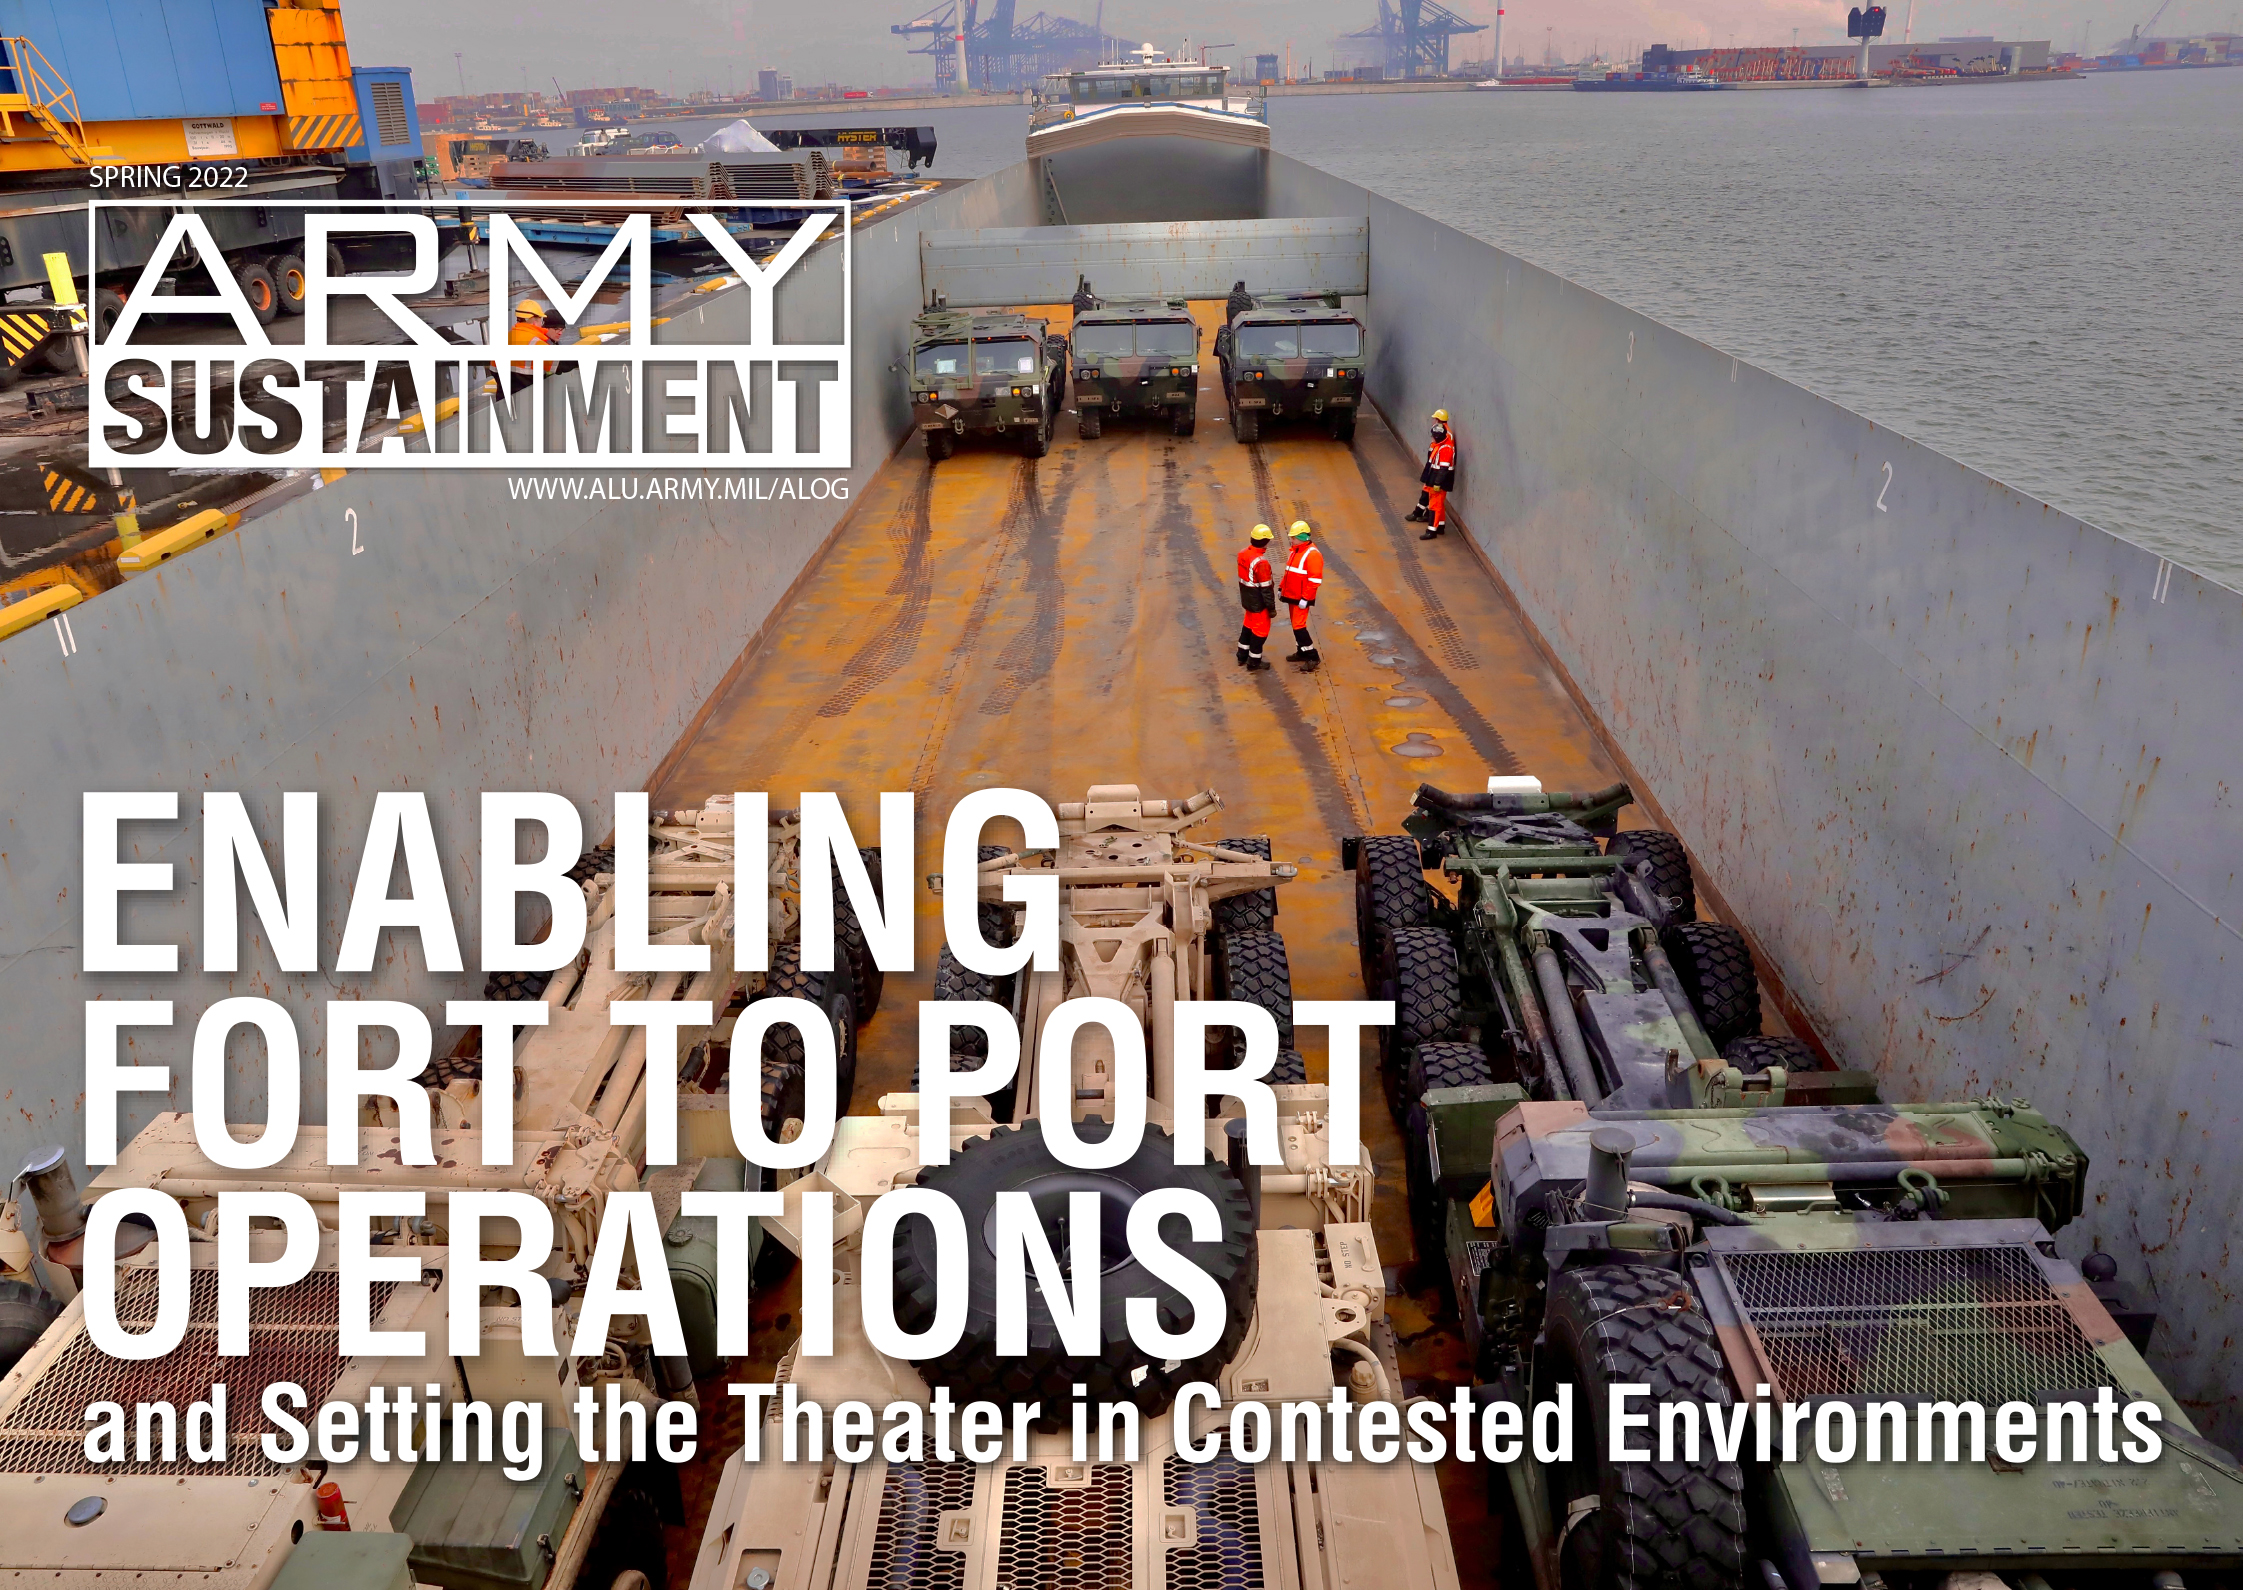 Current issue on www.army.mil